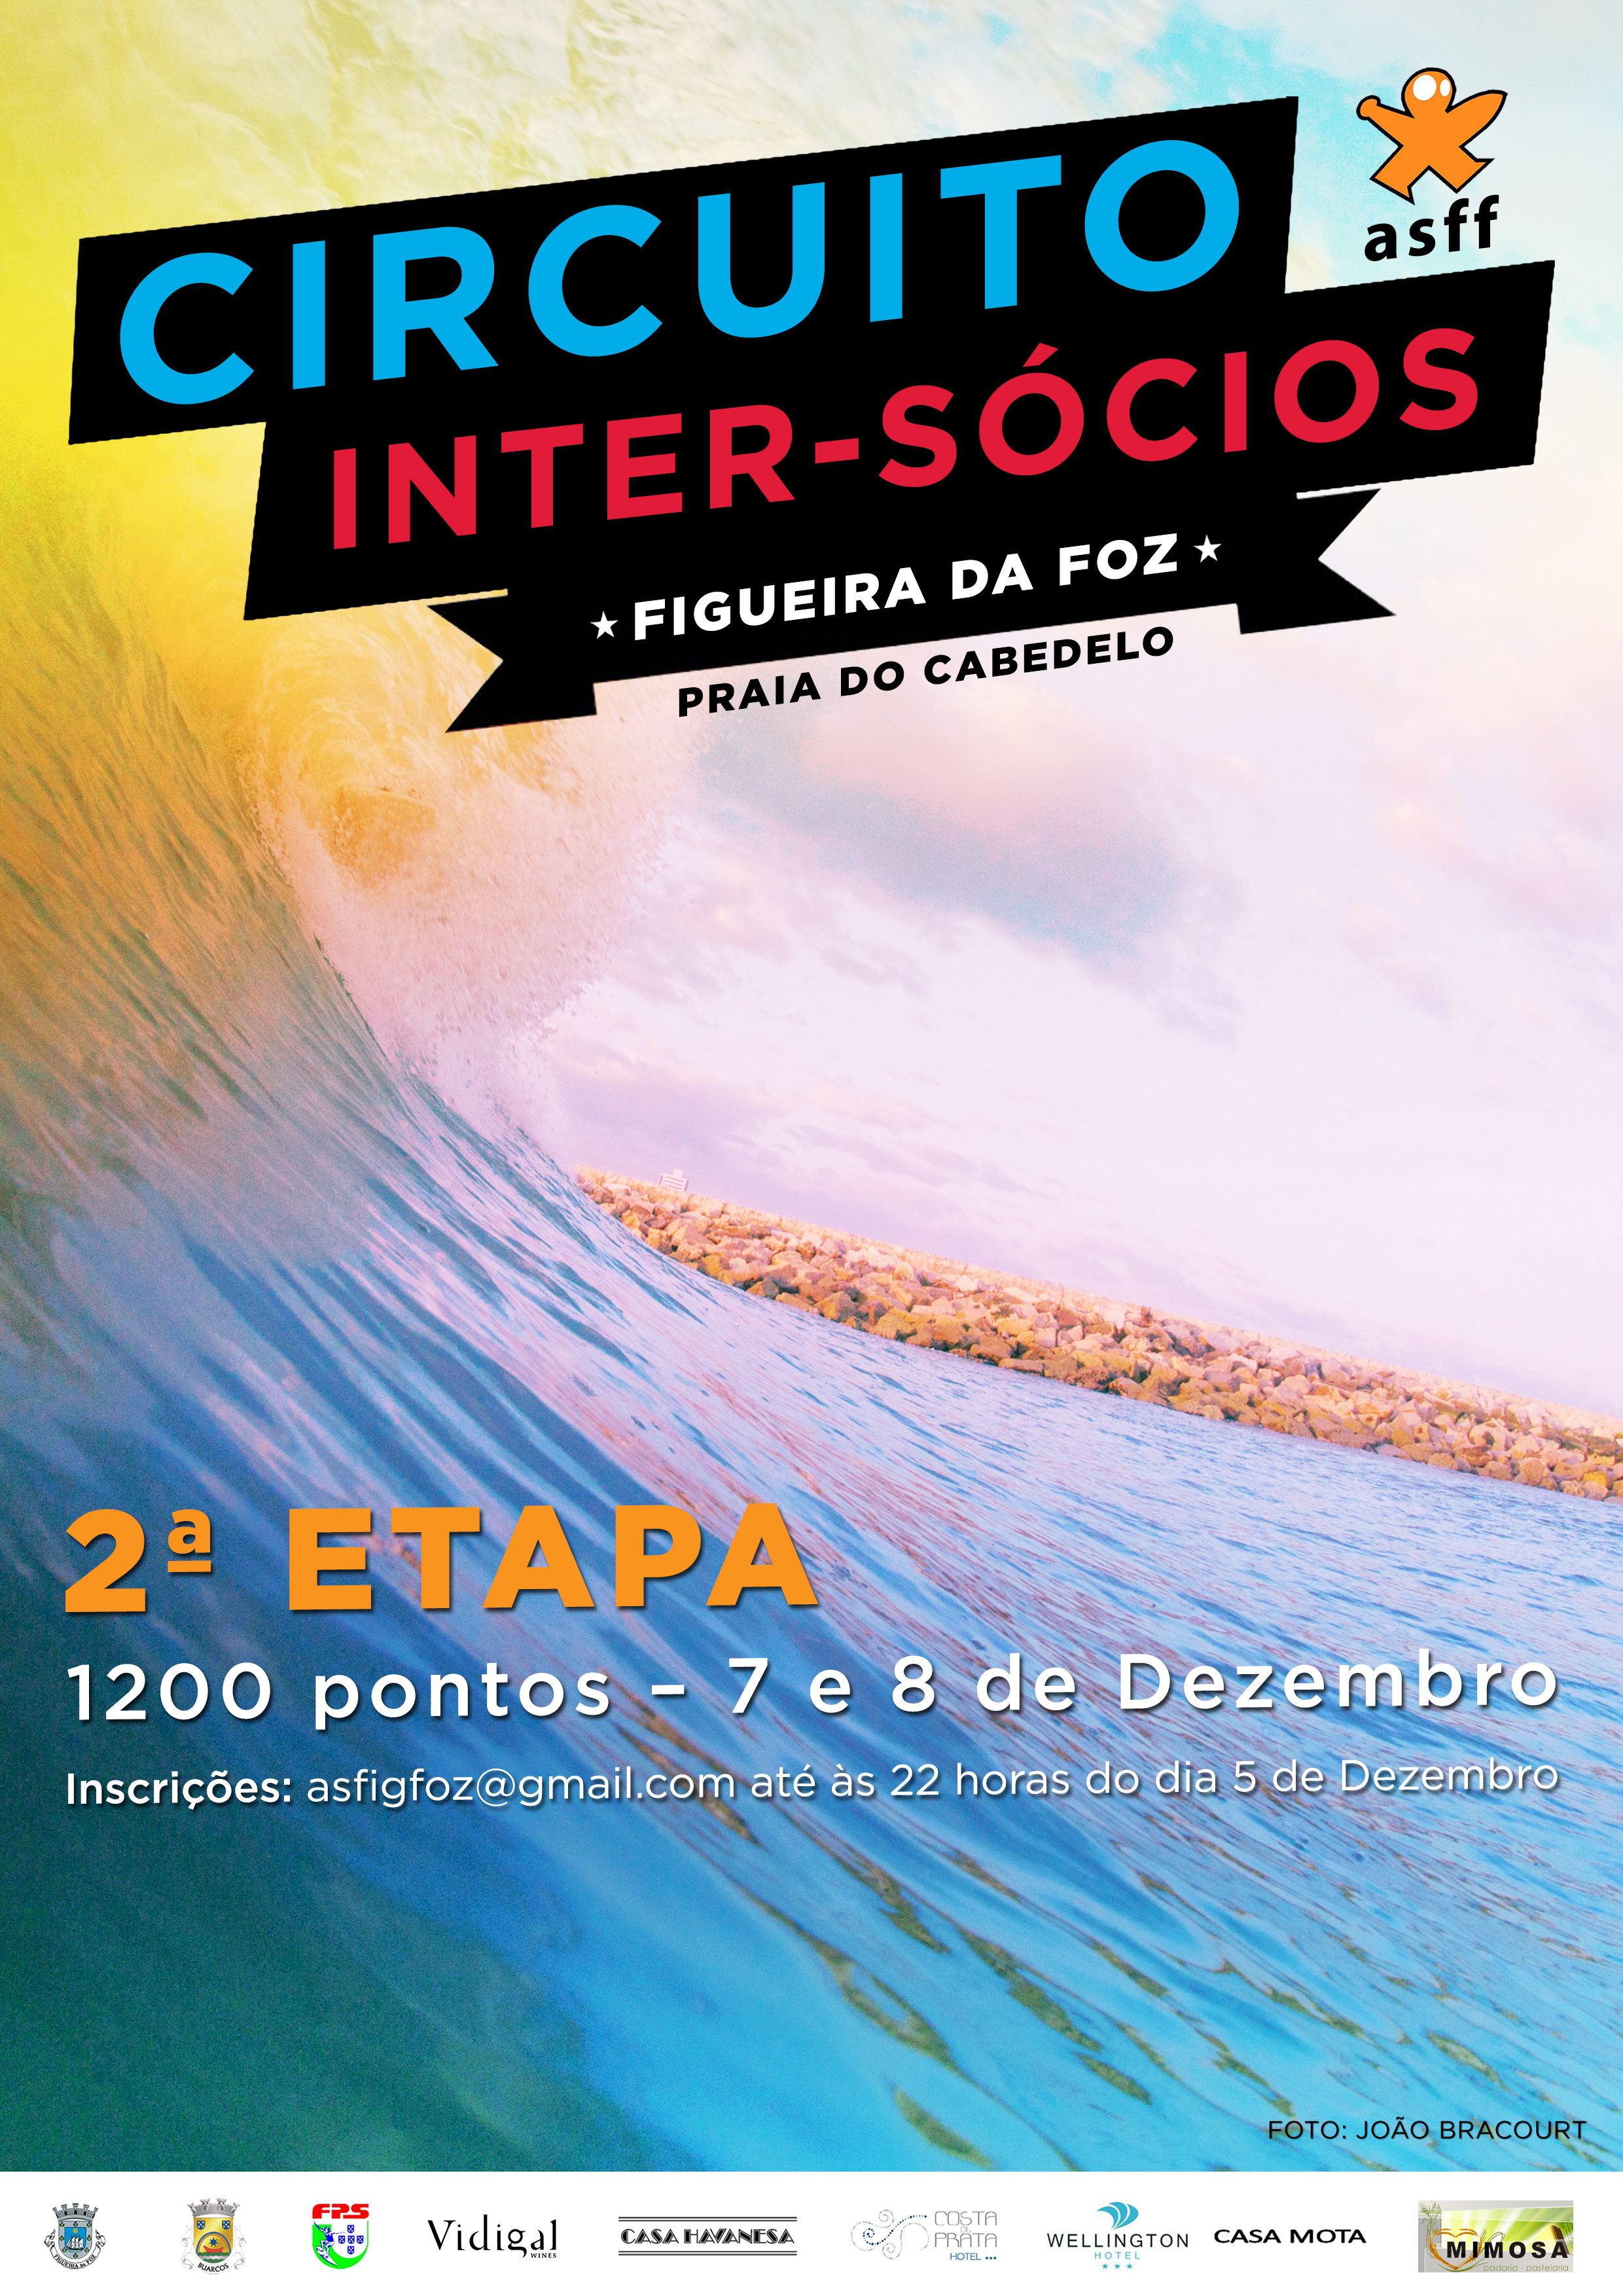 Click to enlarge image ASFF - Circuito Inter Scios FINAL 3.jpg